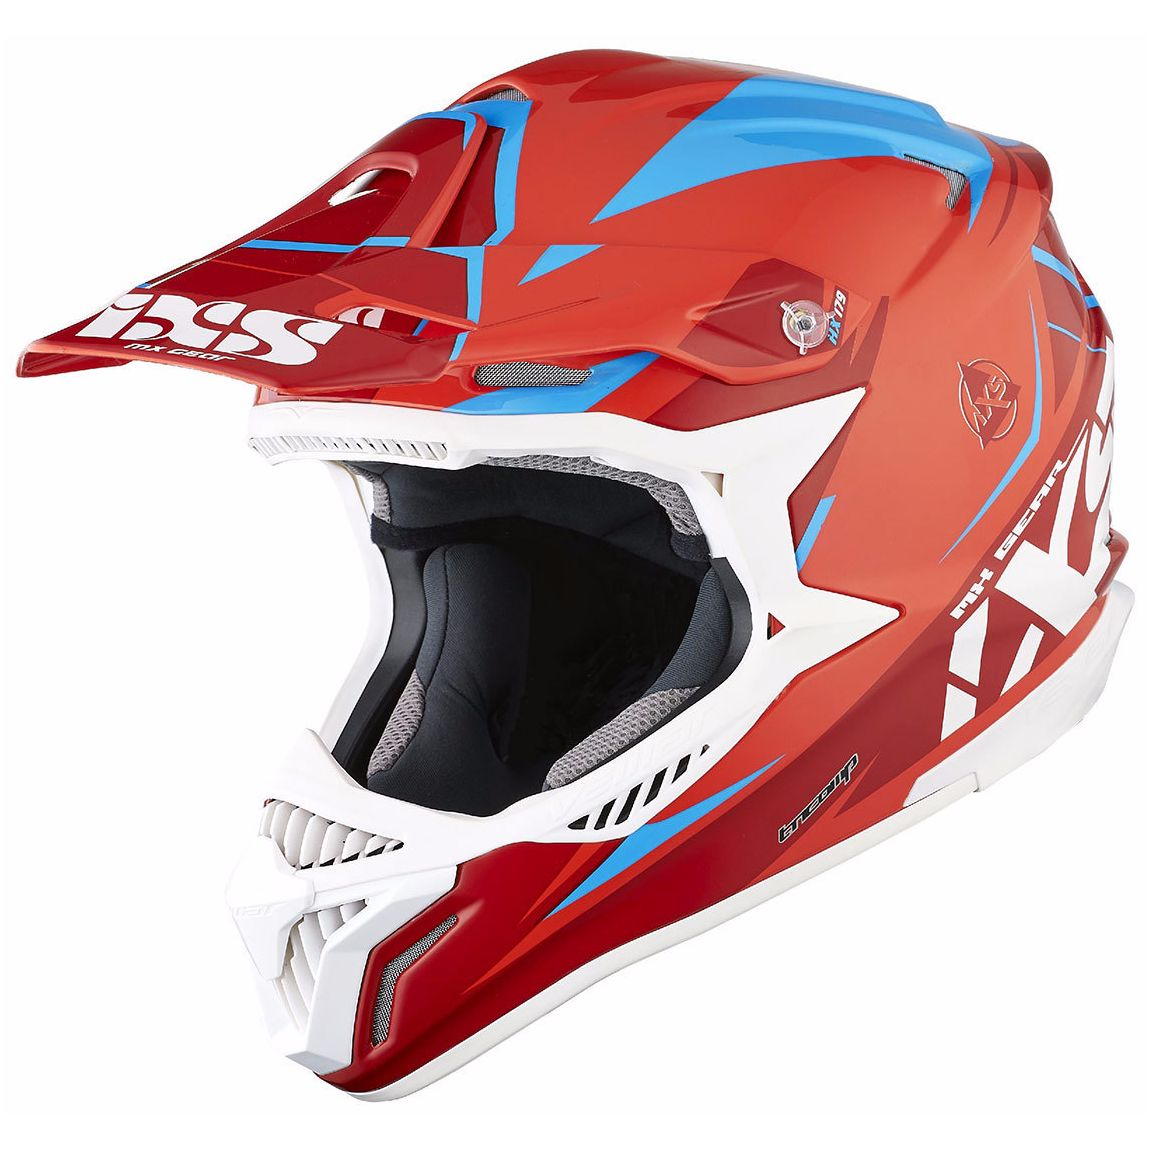 Casque Cross Ixs Hx179 Flash - Rouge Bleu